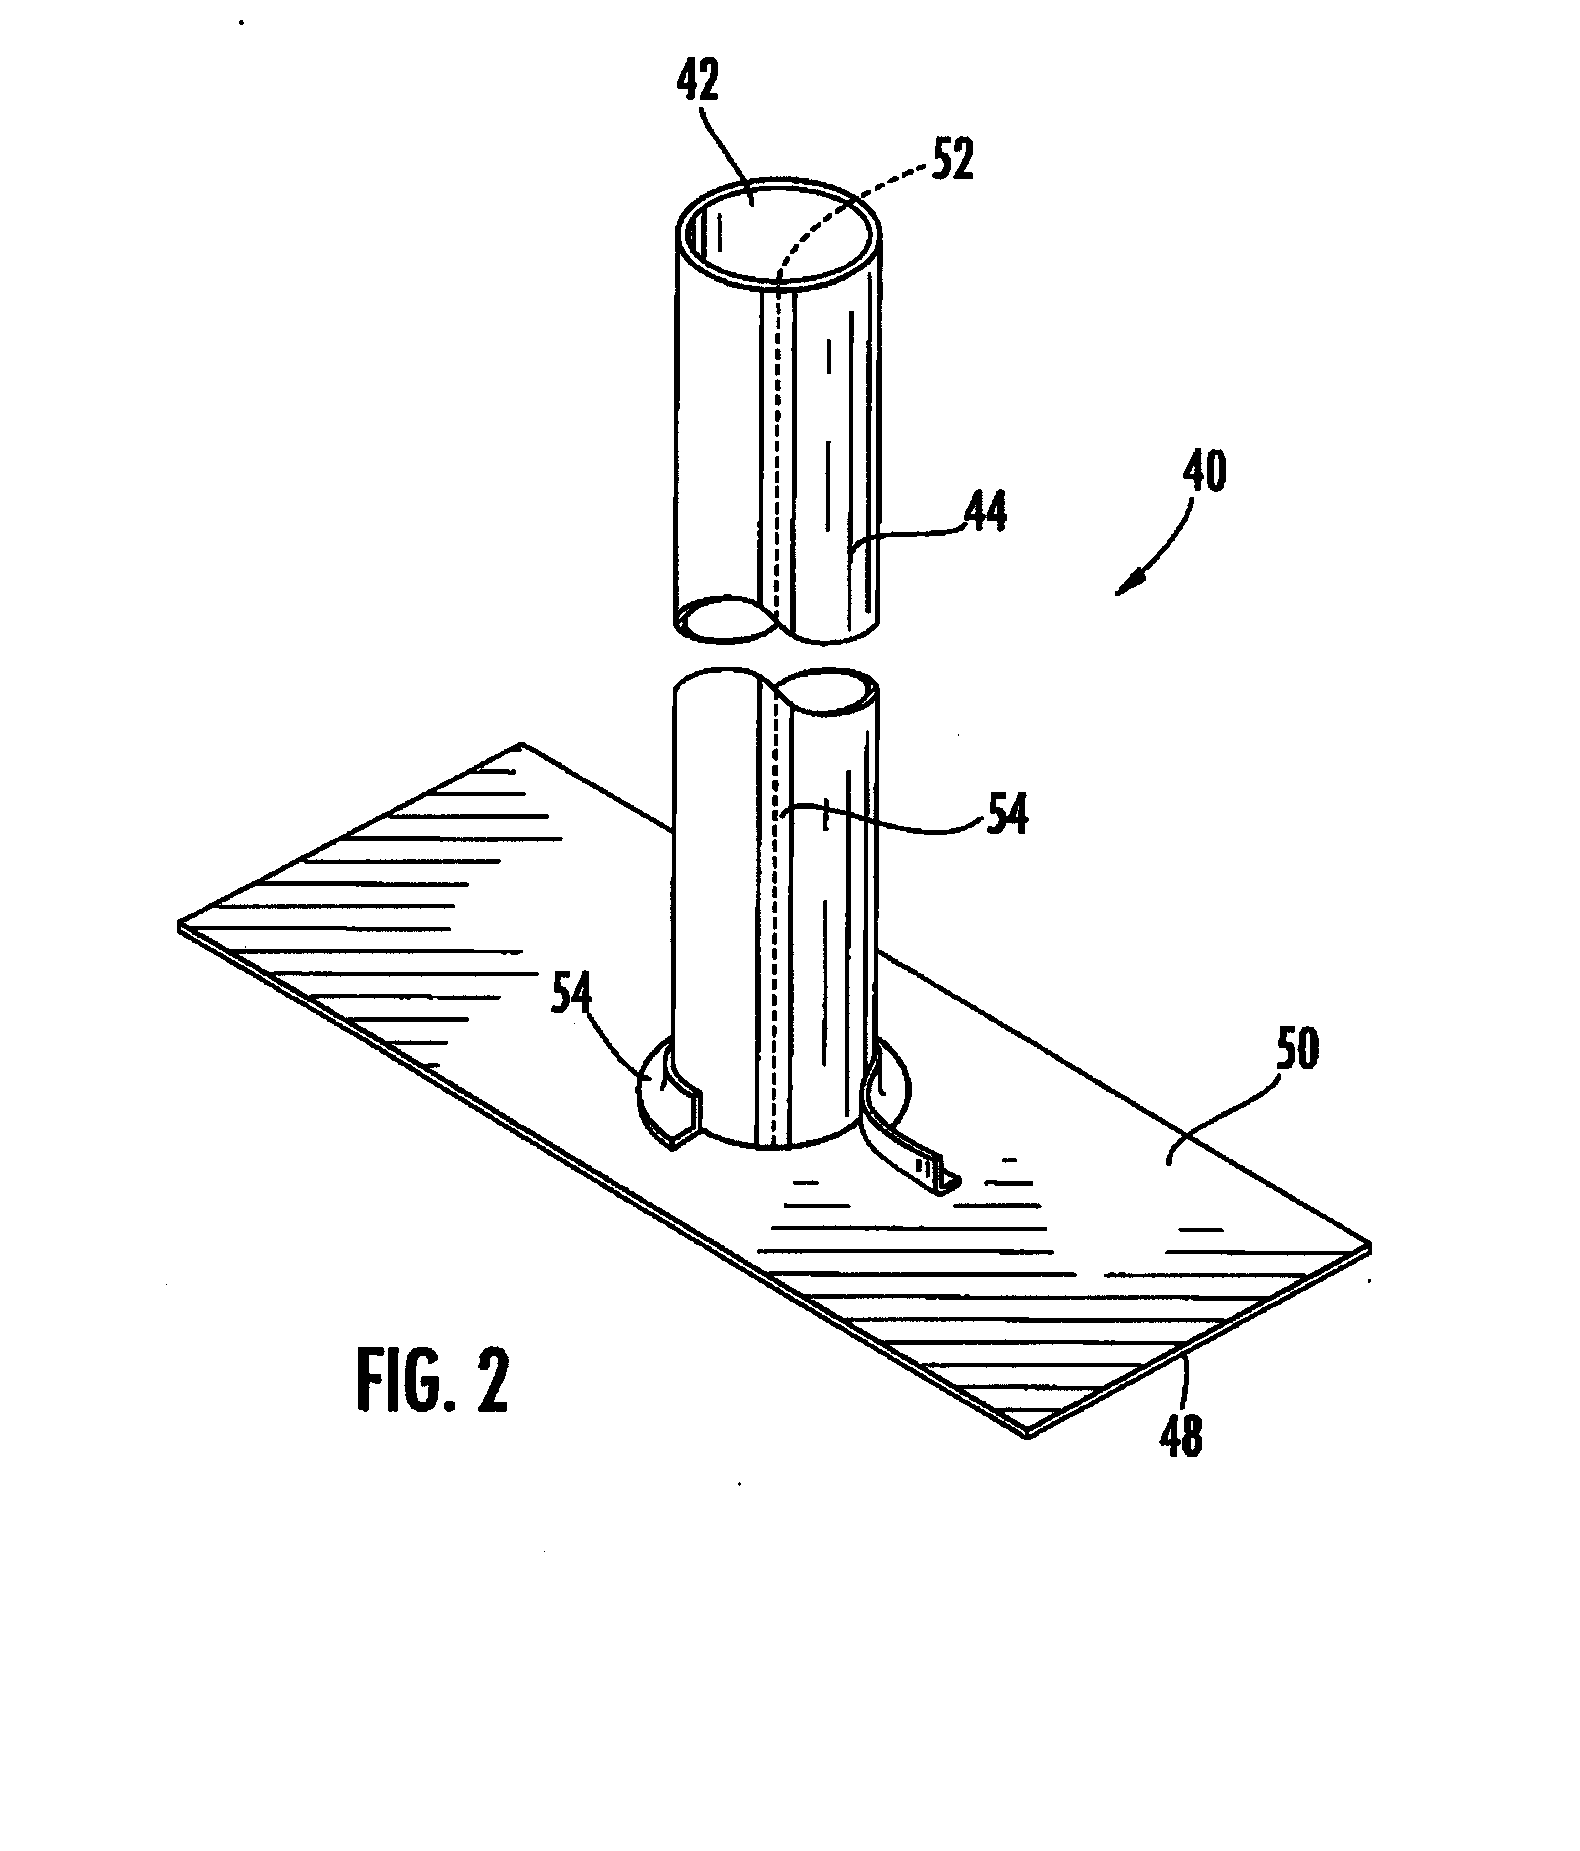 Flexible Pipe For Bladder Lining : Patent us  bladder and method for cured in